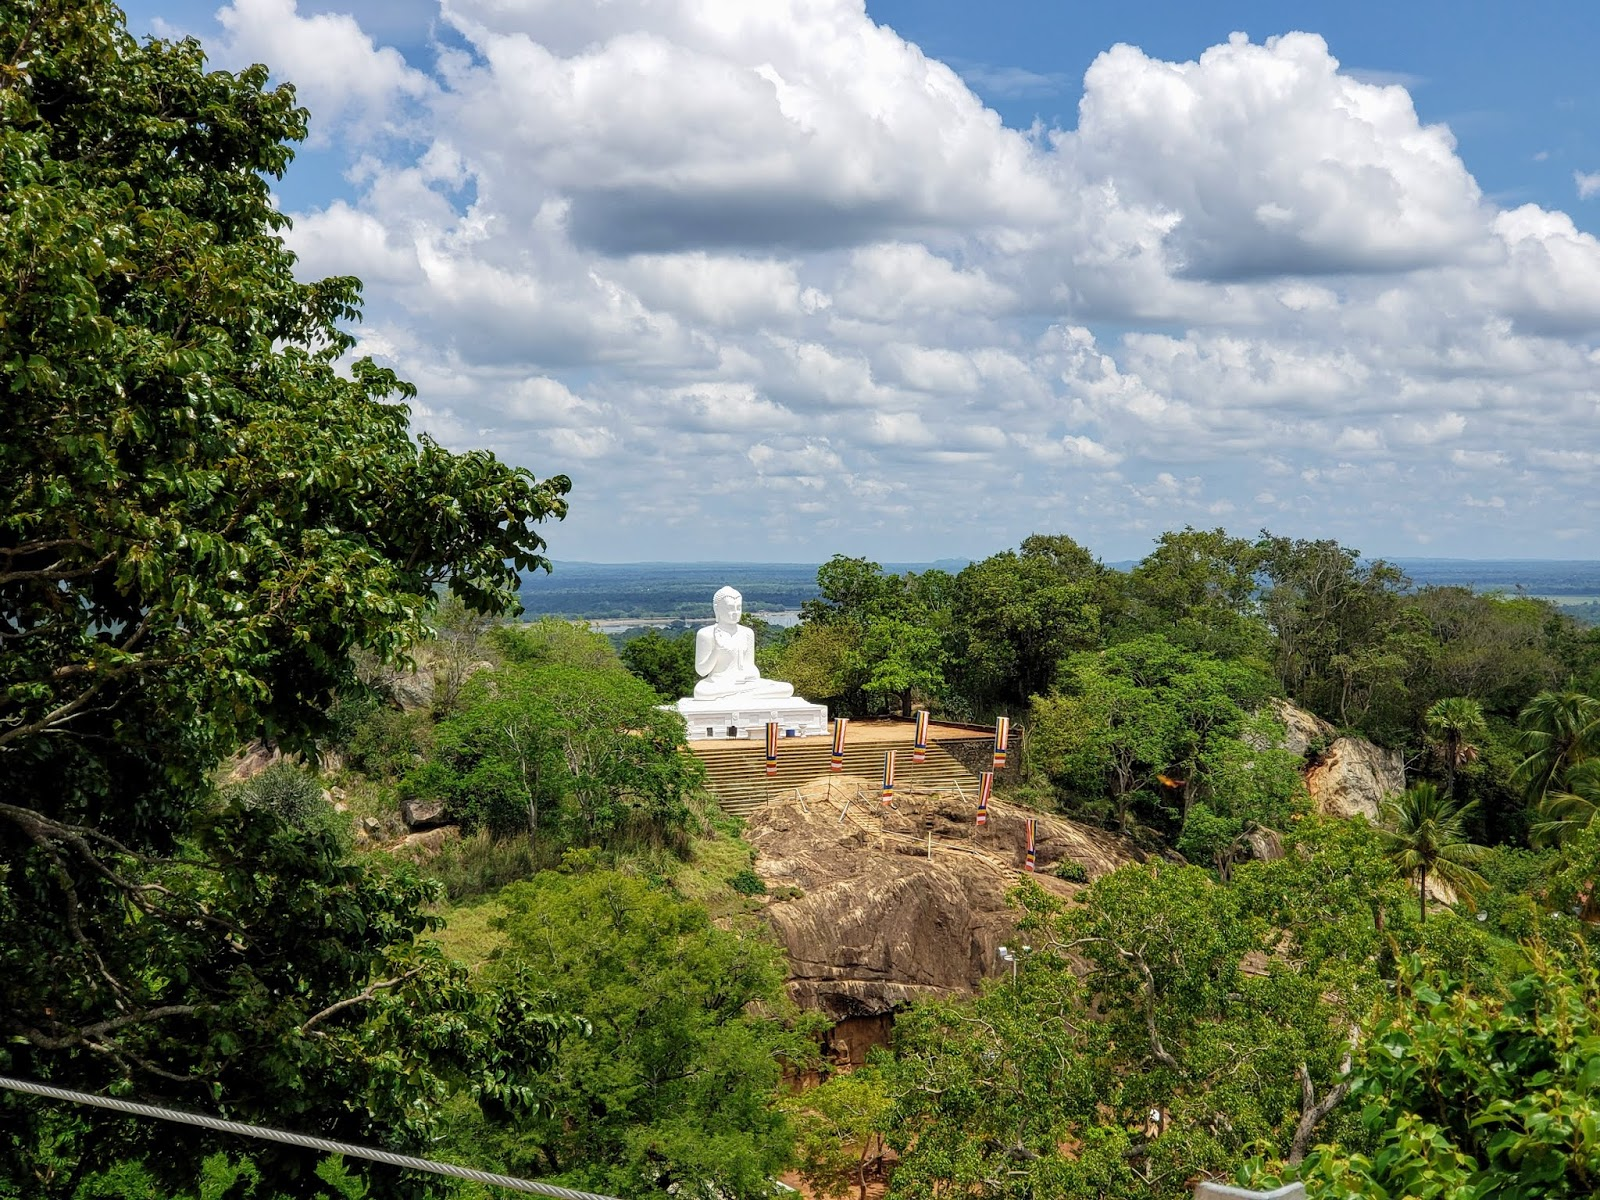 A Visit to Famous Cultural Sites in Sri Lanka